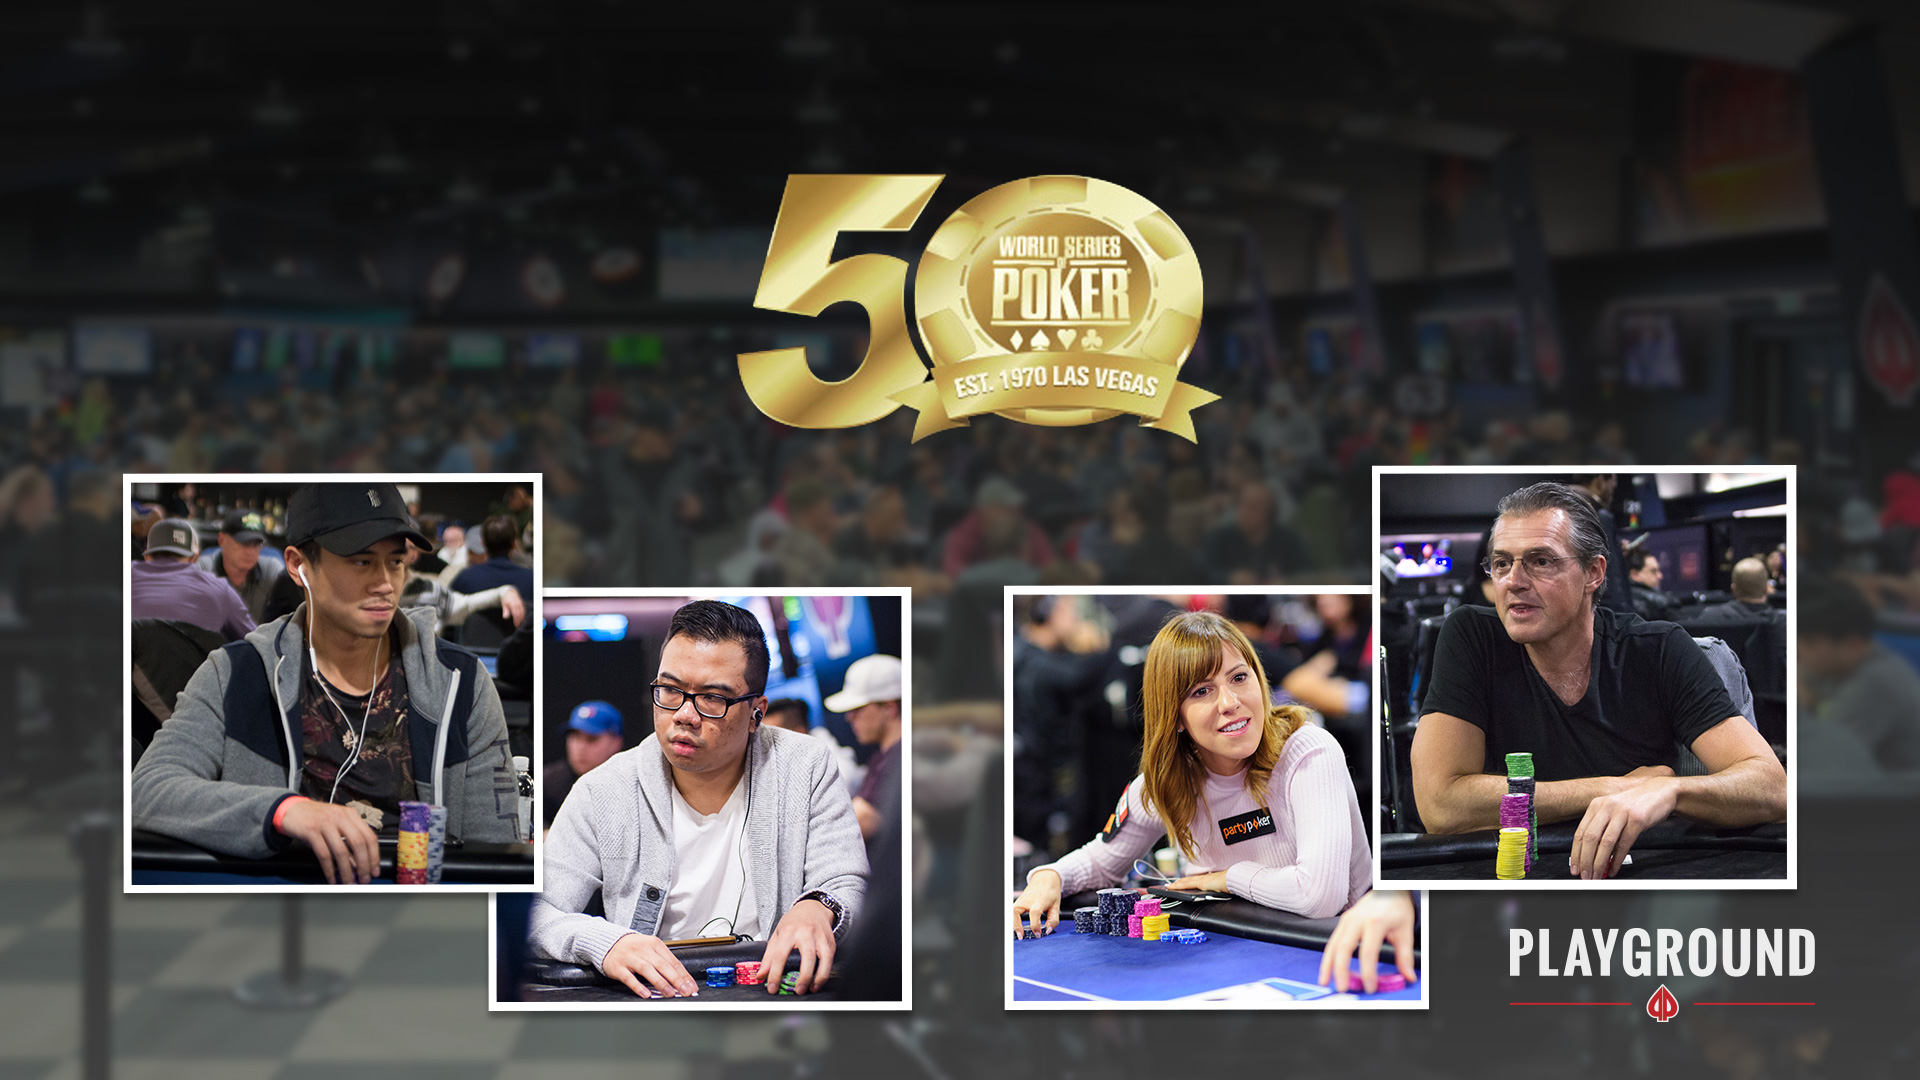 World of Poker – Playground News